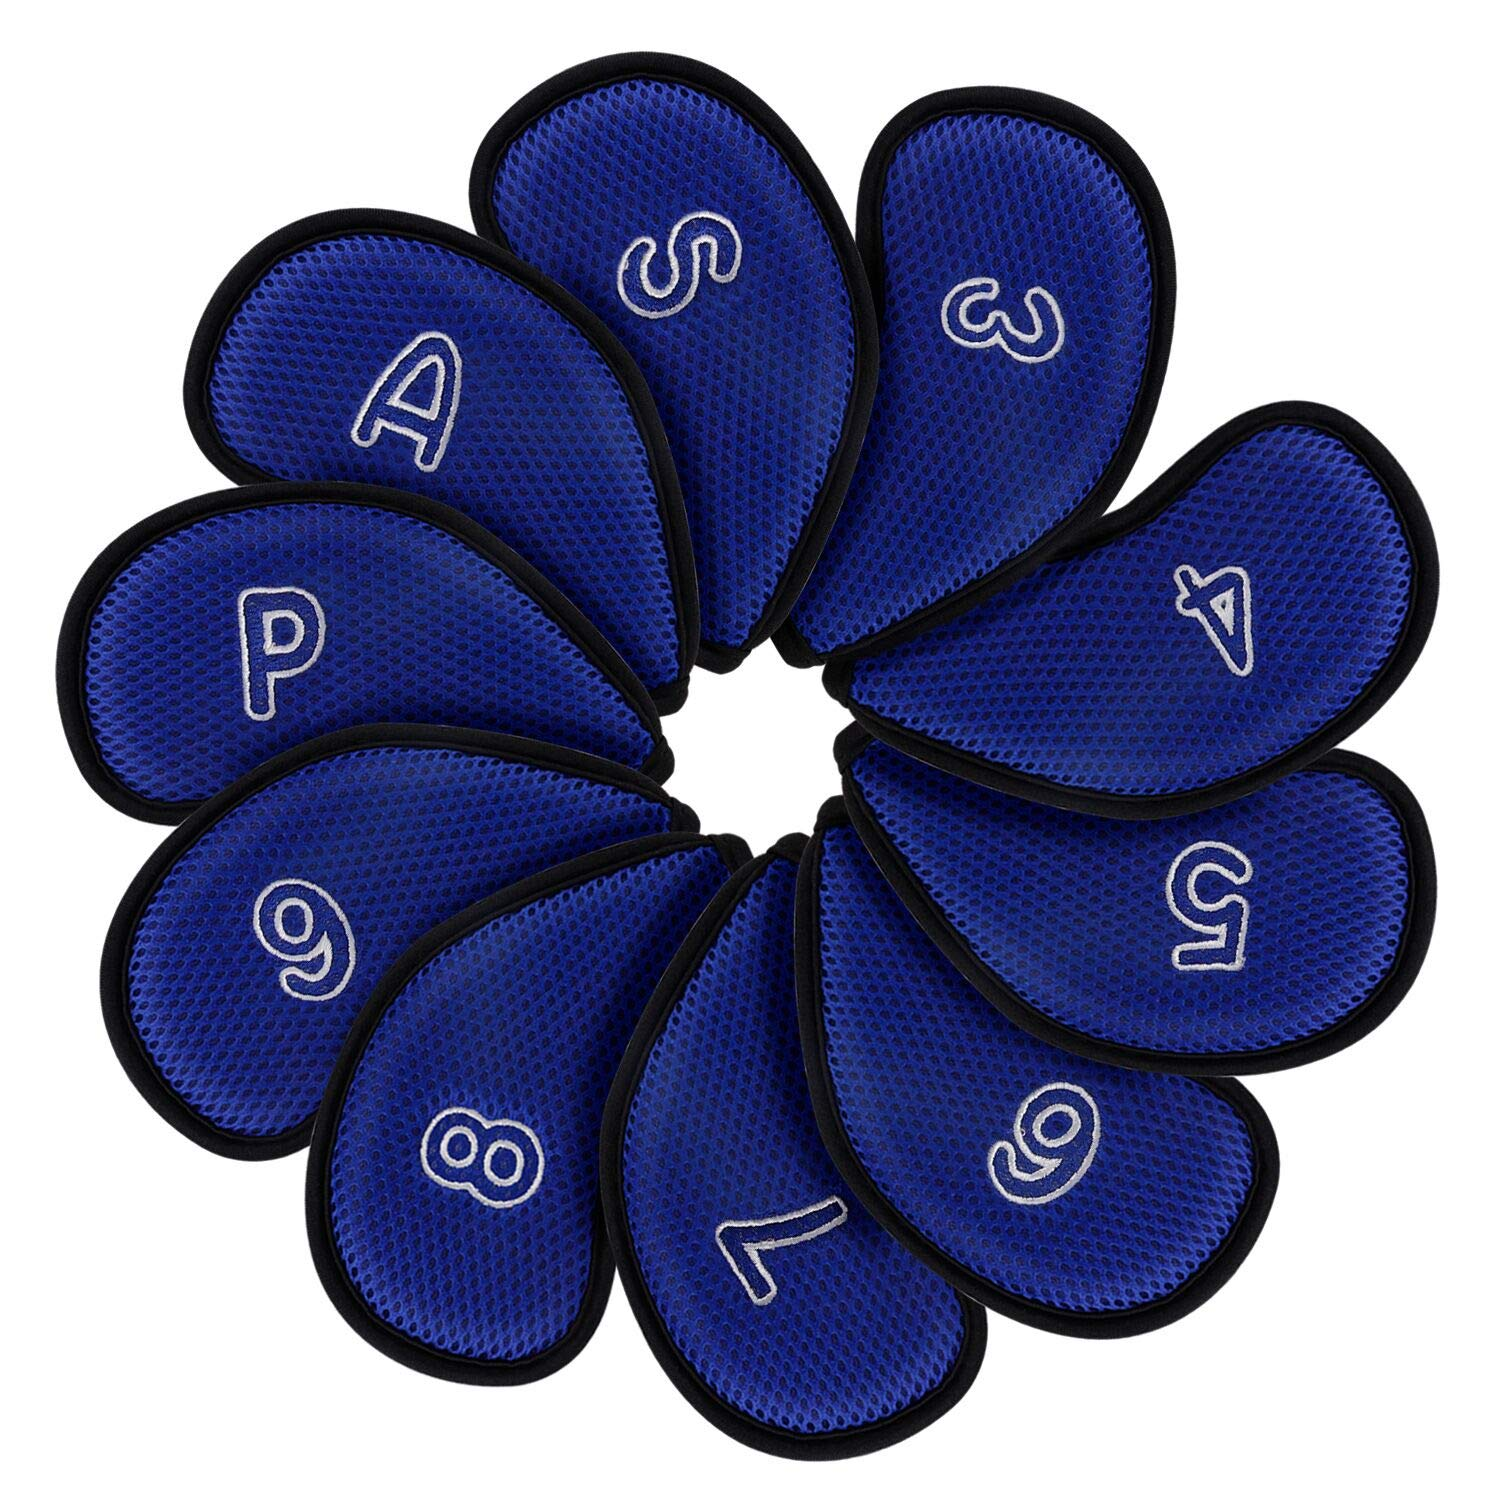 montela golf Blue Meshy Golf Iron Covers Fit Most Irons.